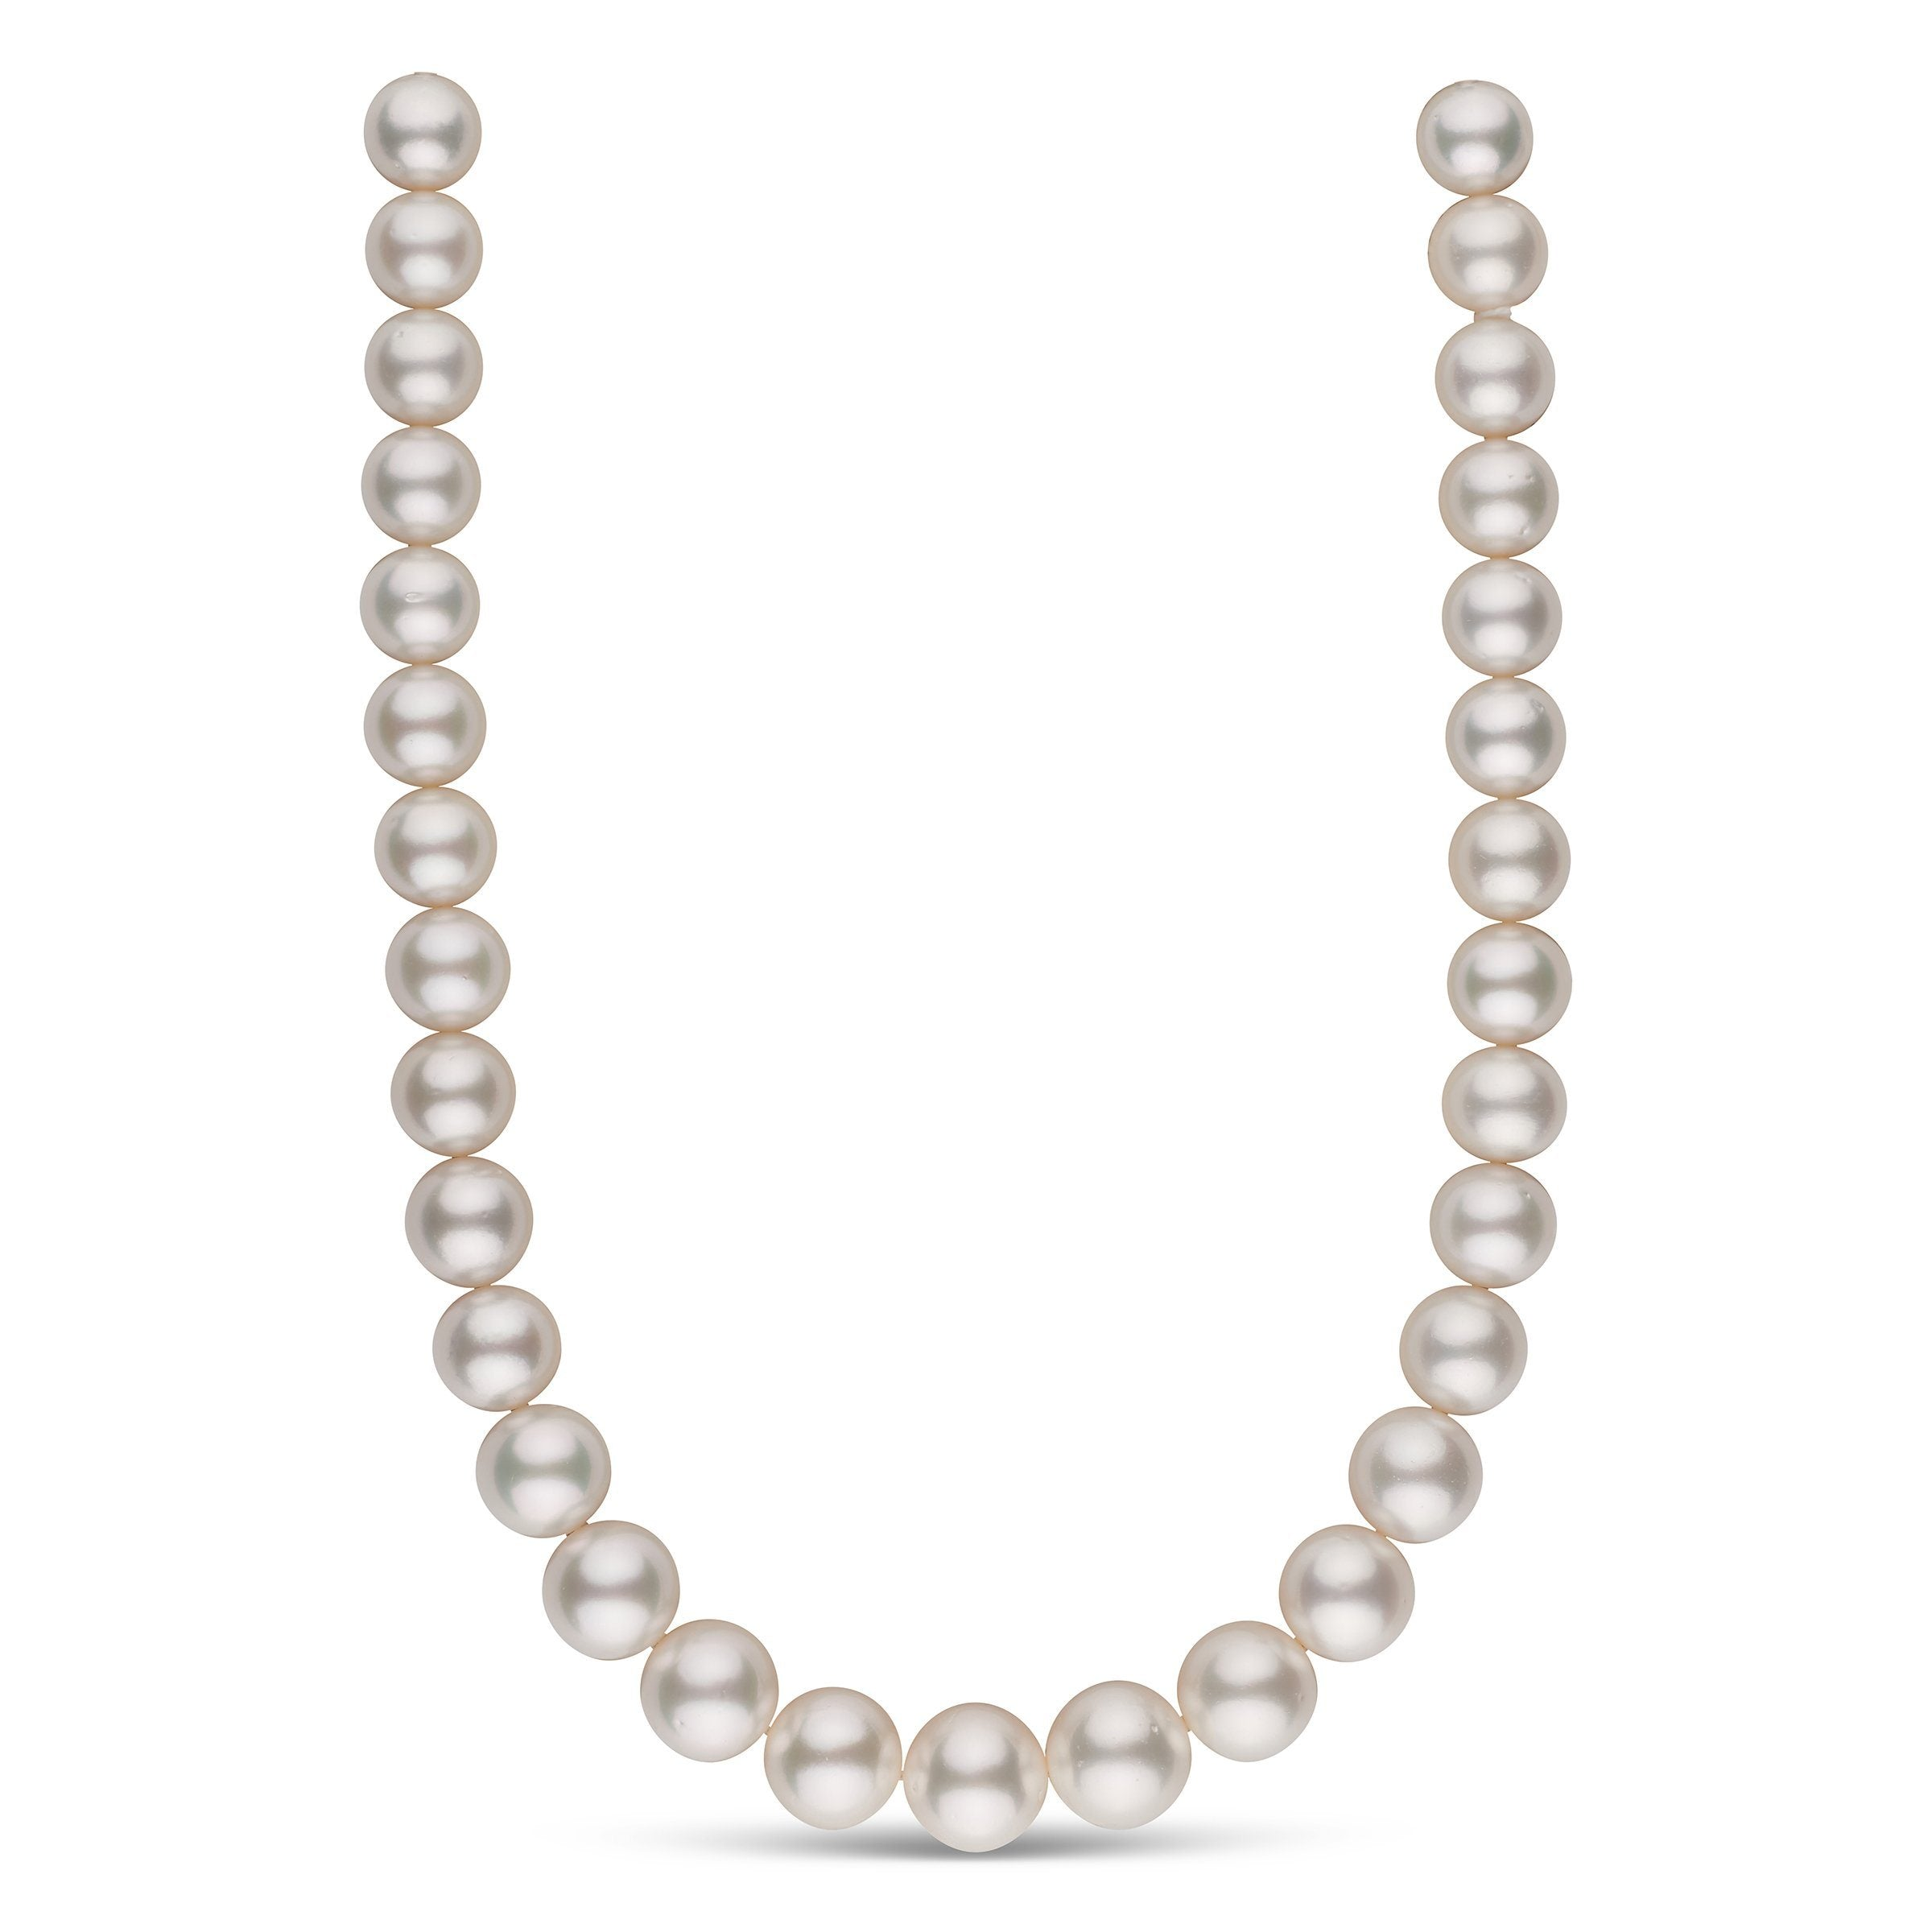 13.0-16.1 mm AA+ White South Sea Round Pearl Necklace